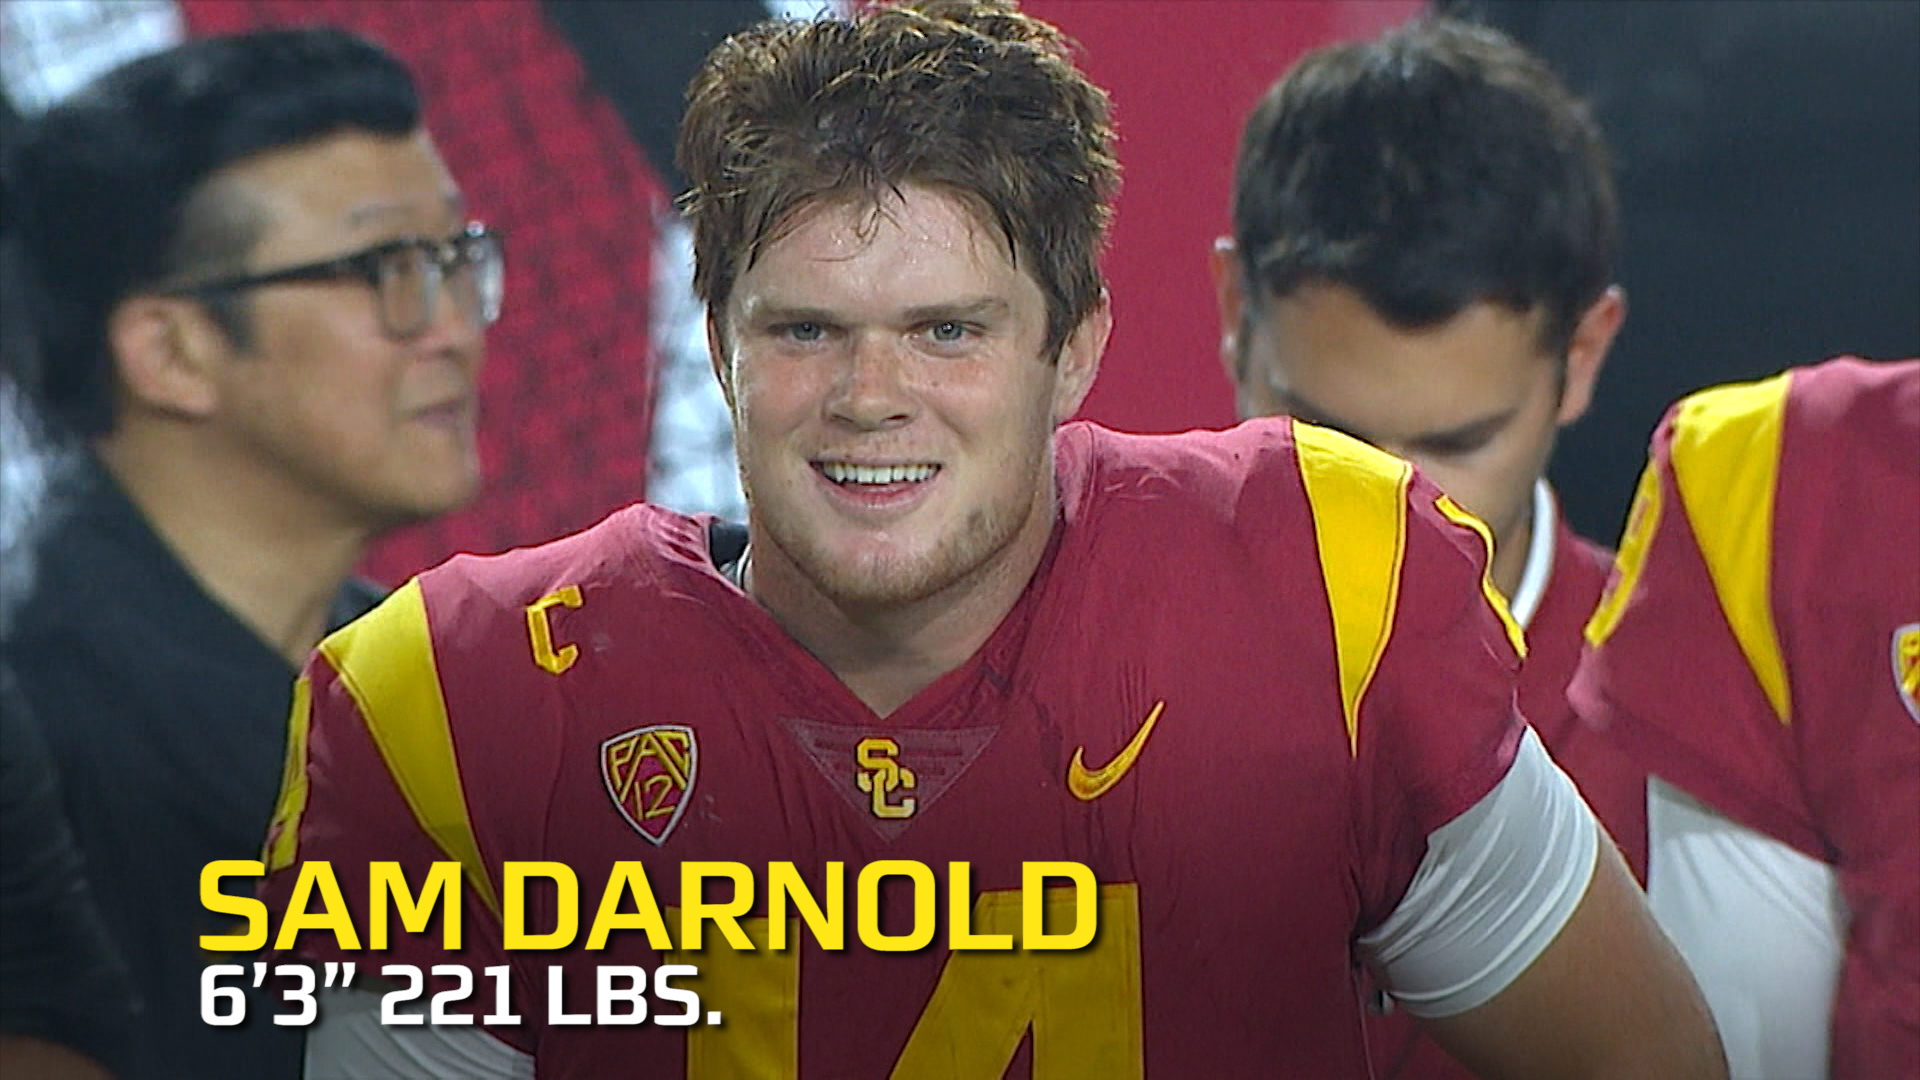 Sam Darnold Highlights Usc S Prolific Passer Could Be The